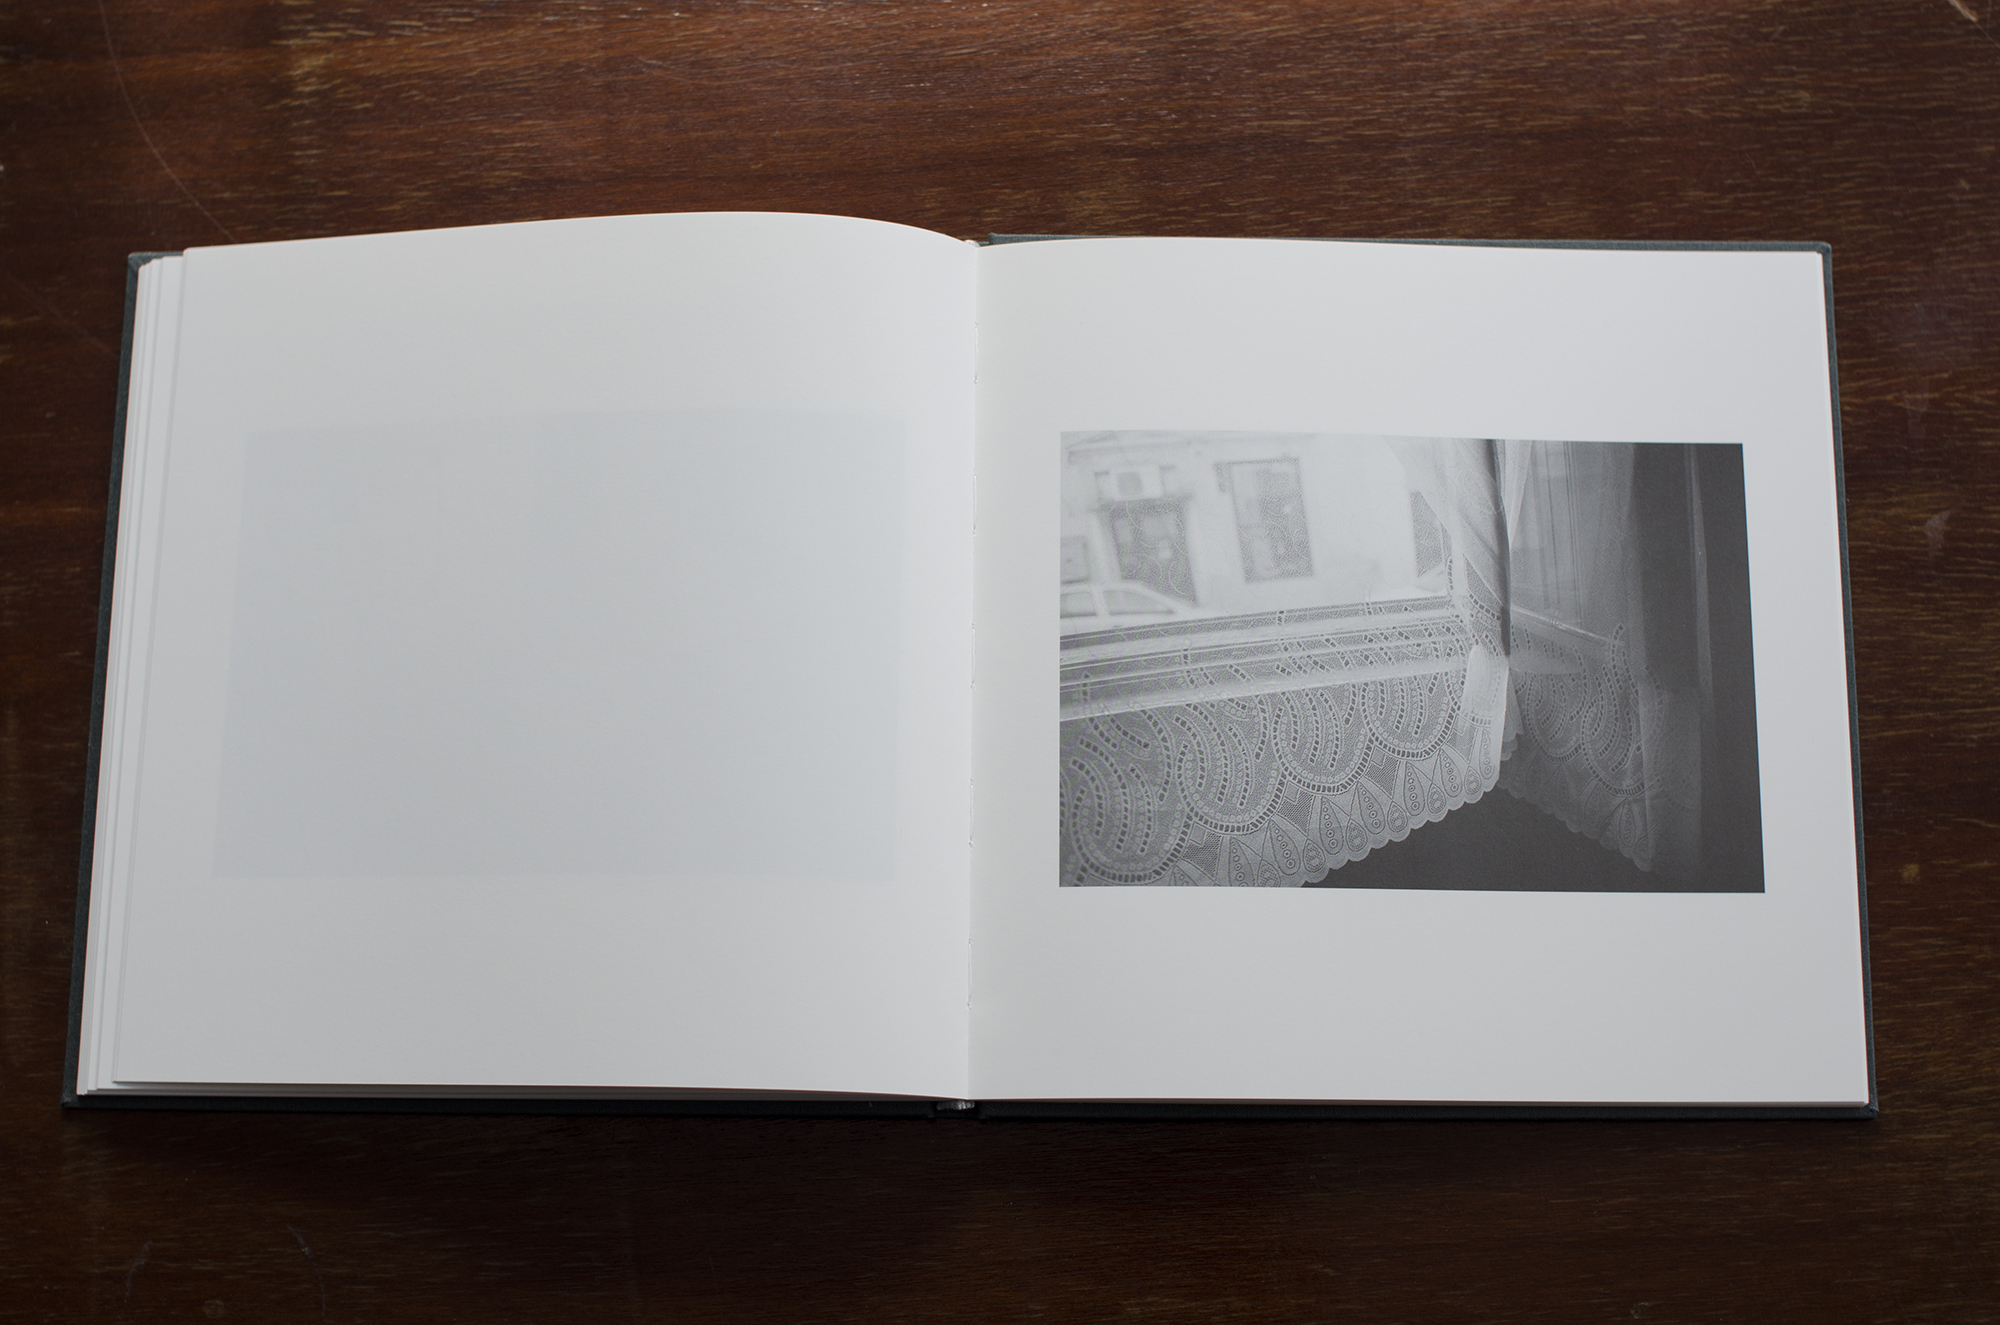 Ovidiu+Gordan+Familiar+Place+photobook_09.jpg